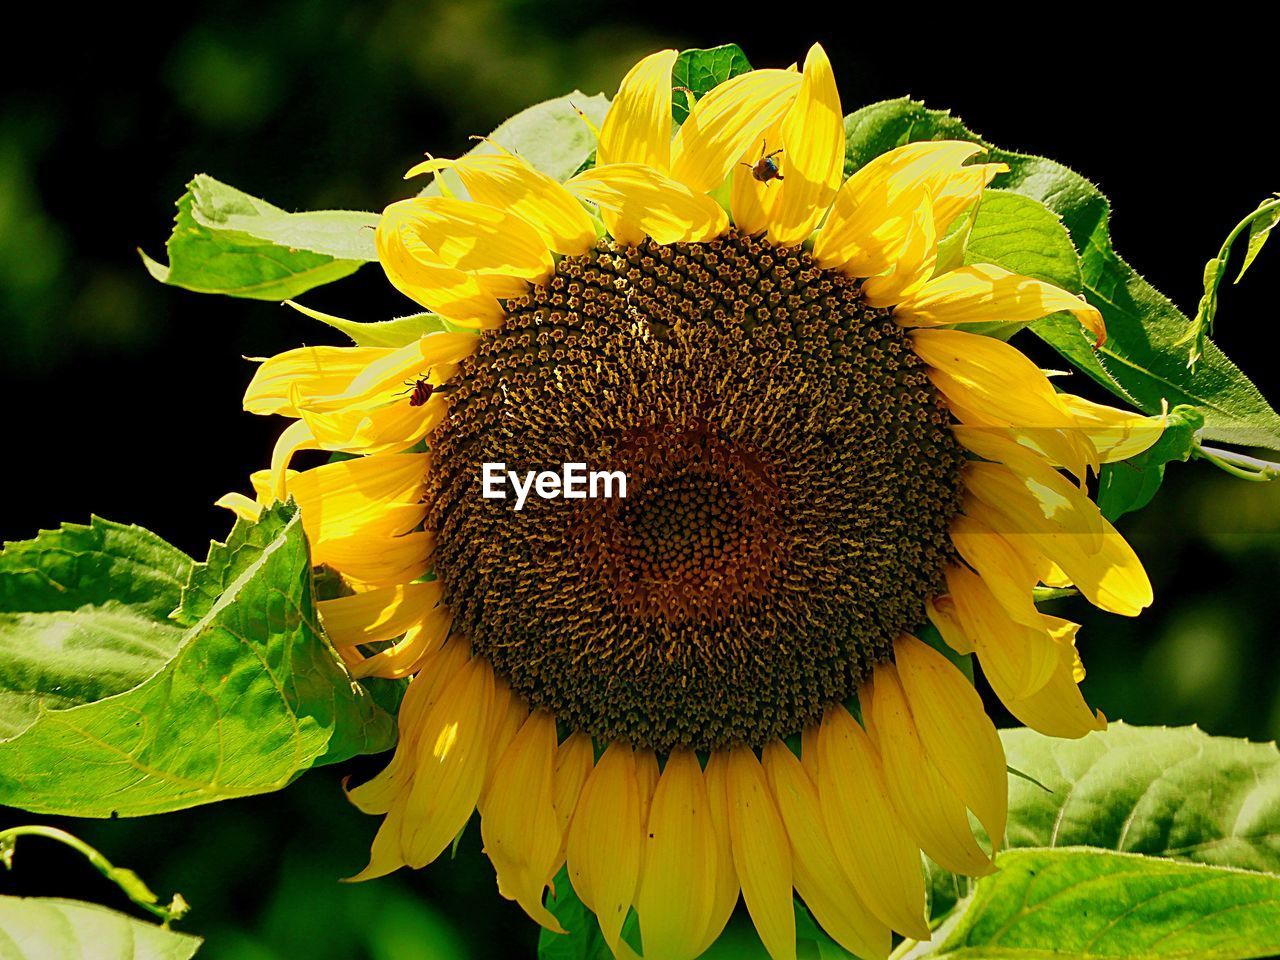 flower, petal, yellow, fragility, flower head, beauty in nature, freshness, growth, nature, plant, close-up, sunflower, pollen, outdoors, blooming, no people, stamen, leaf, day, springtime, black background